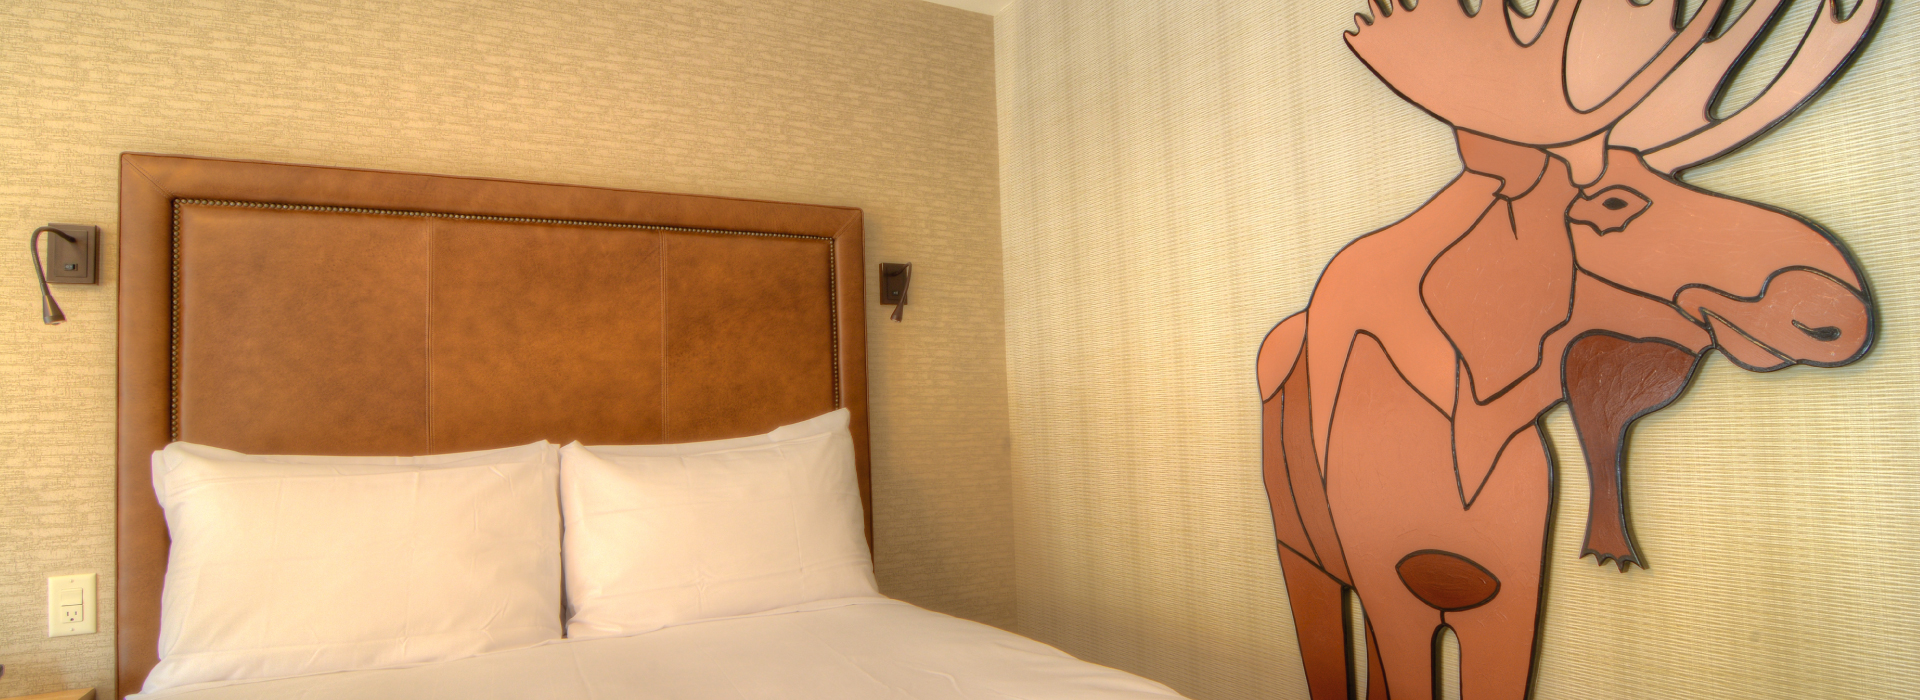 Contact Us - Moose Hotel & Suites